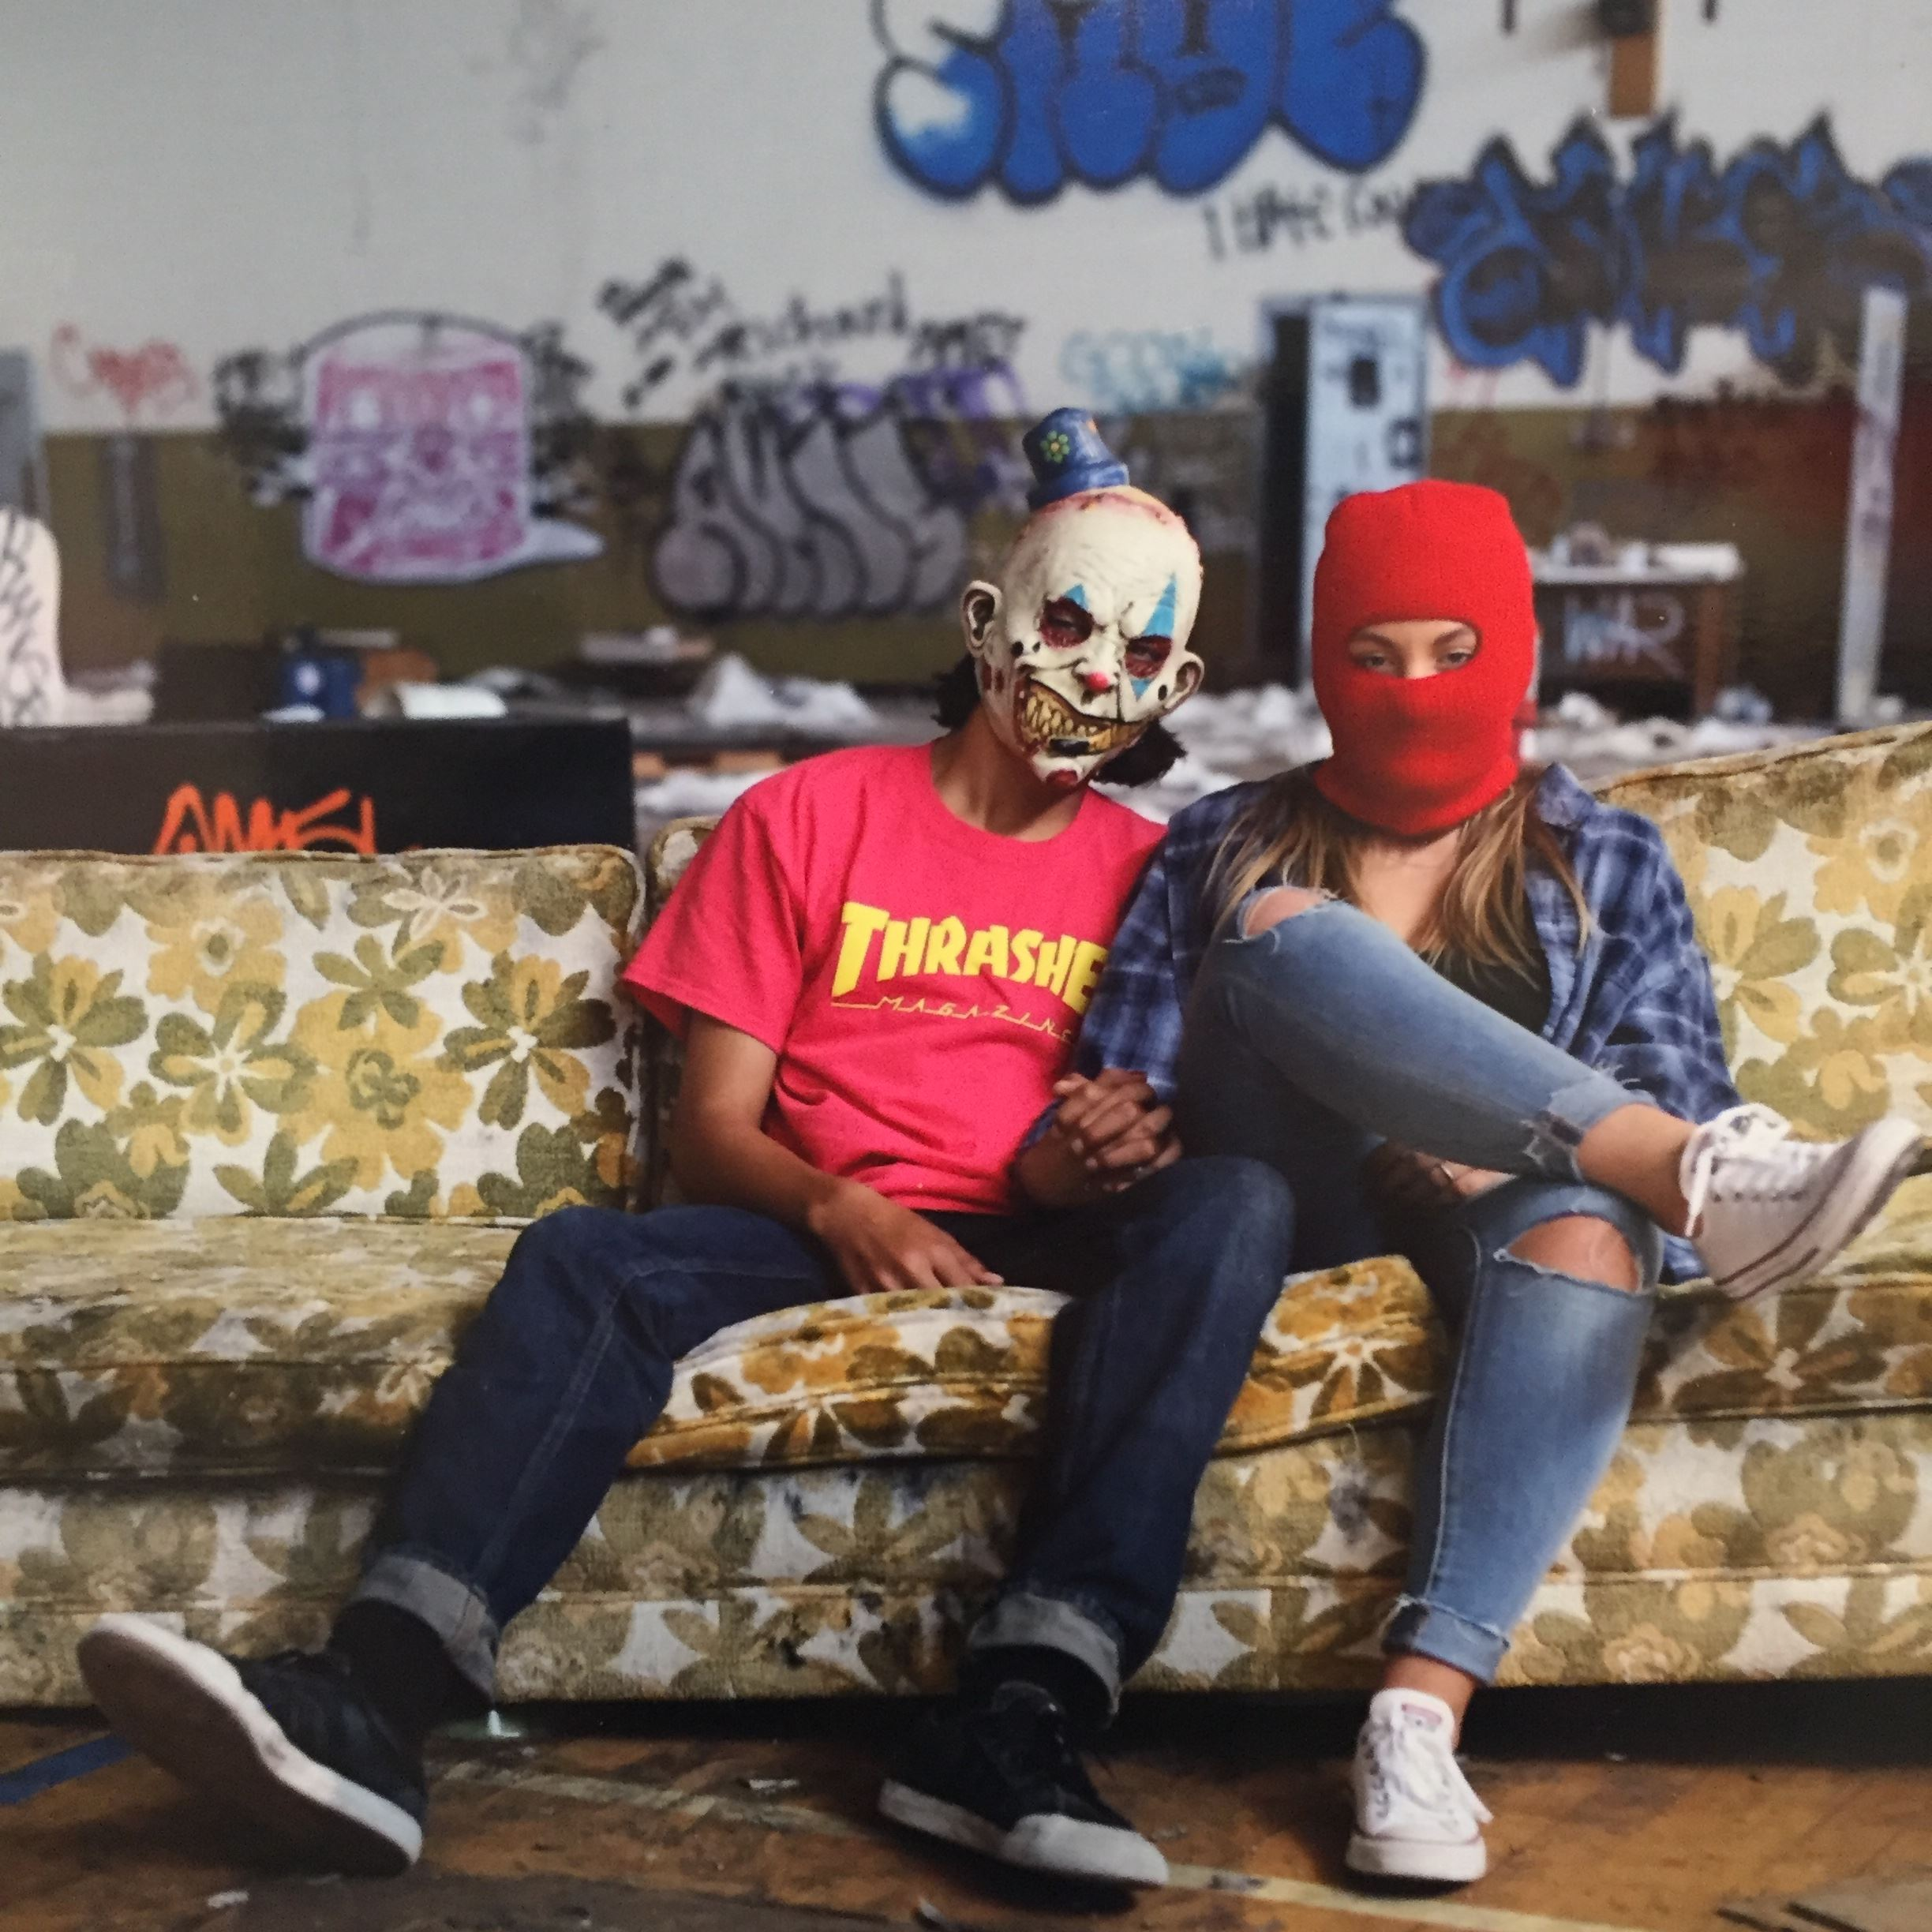 Photograph of two masked people on couch surrounded by graffiti